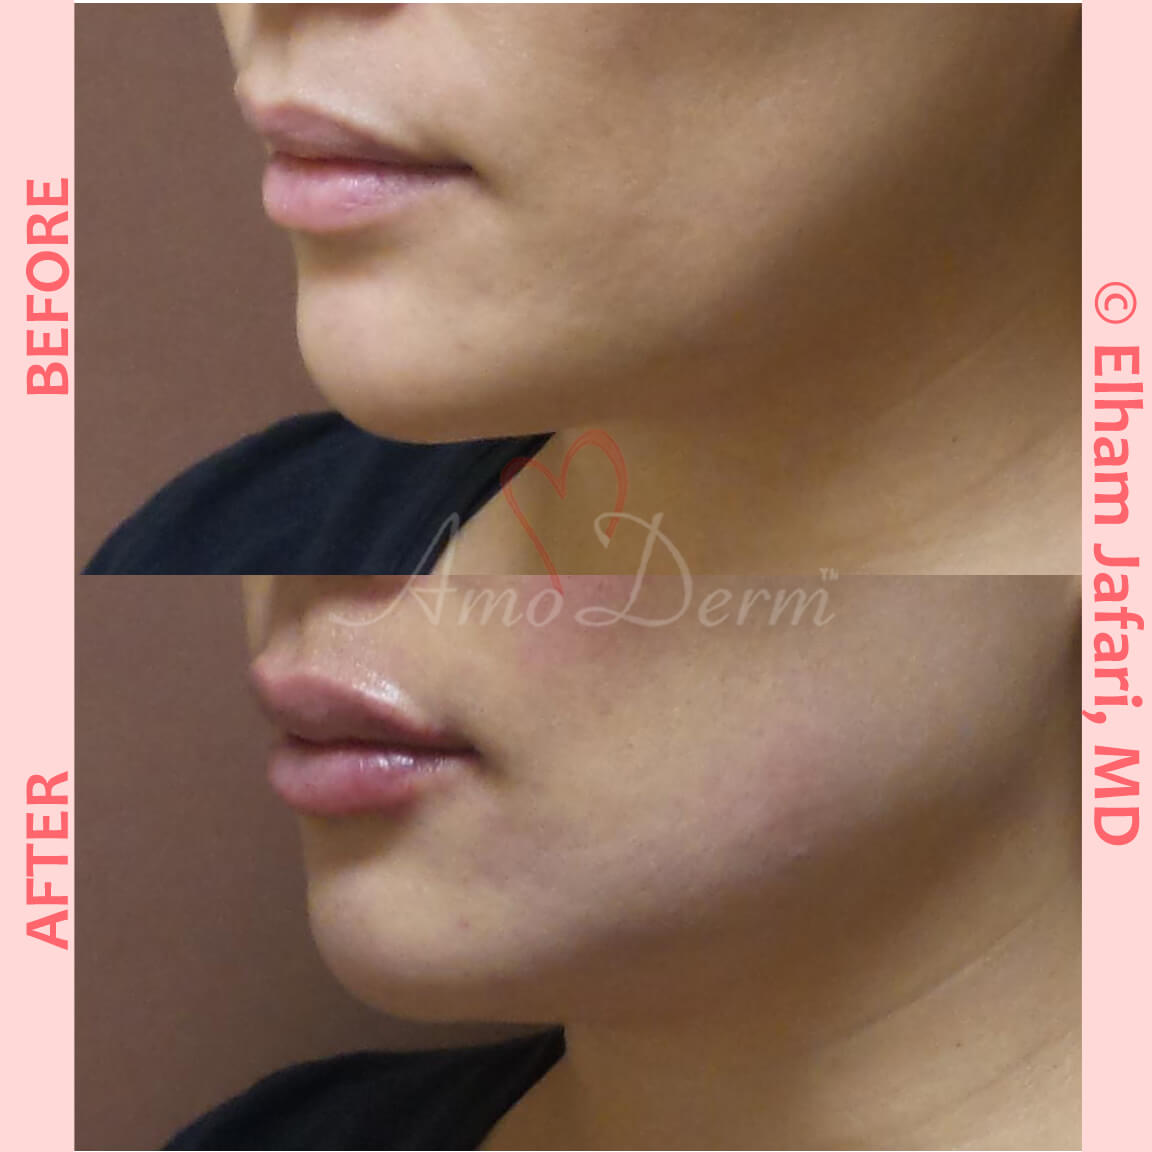 Filler for jawline sculpting and contouring to create a chisled jawline as well as lip augmentation